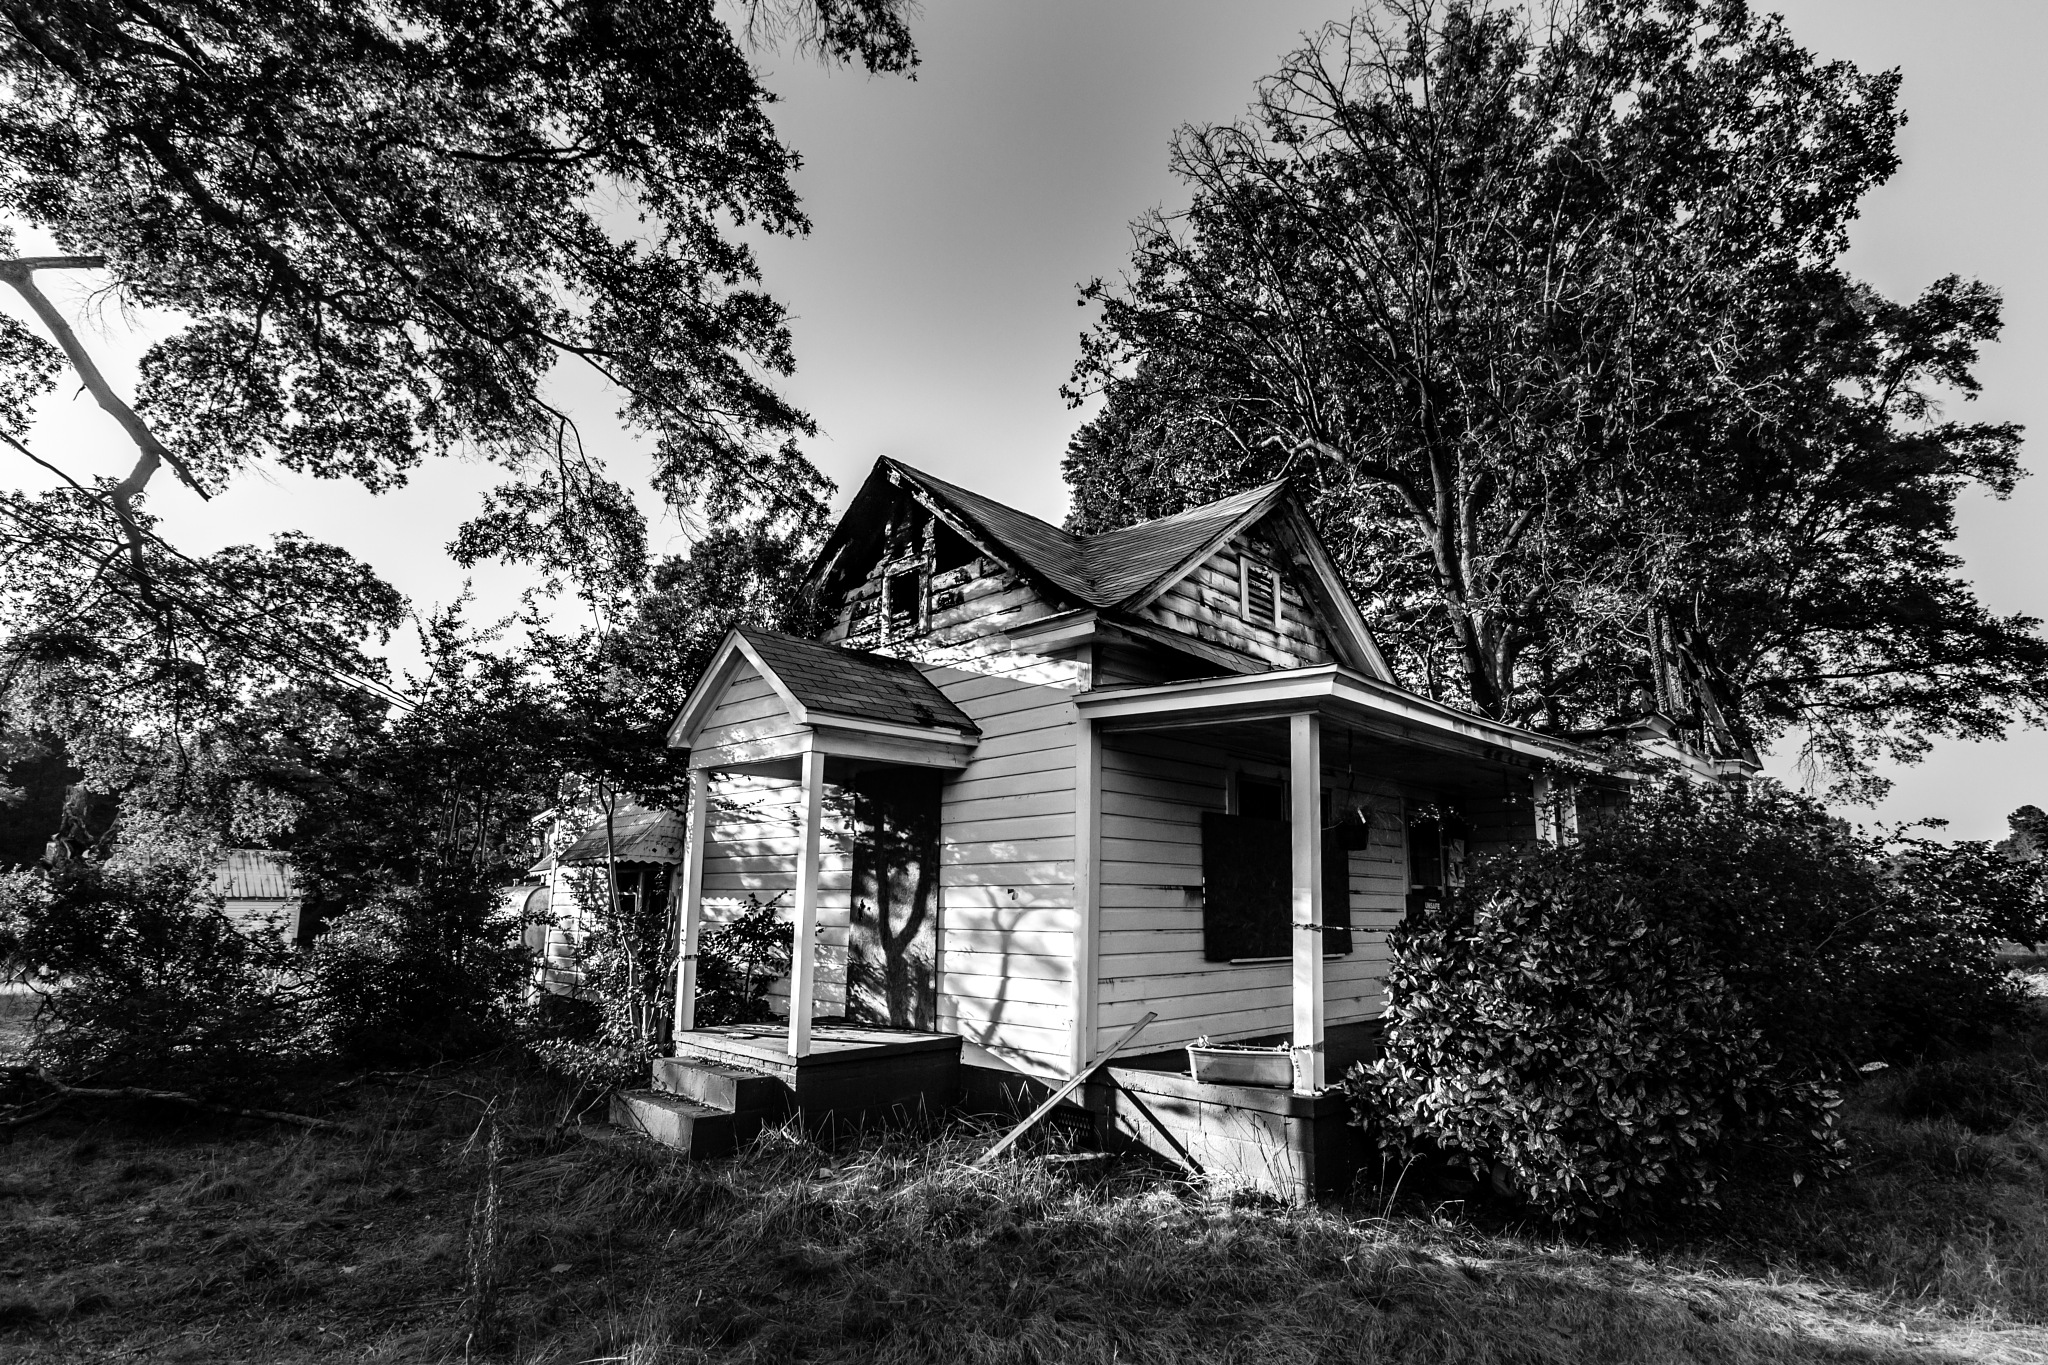 Street Photography Charlotte Abandoned House by MF - SyracuseLUX